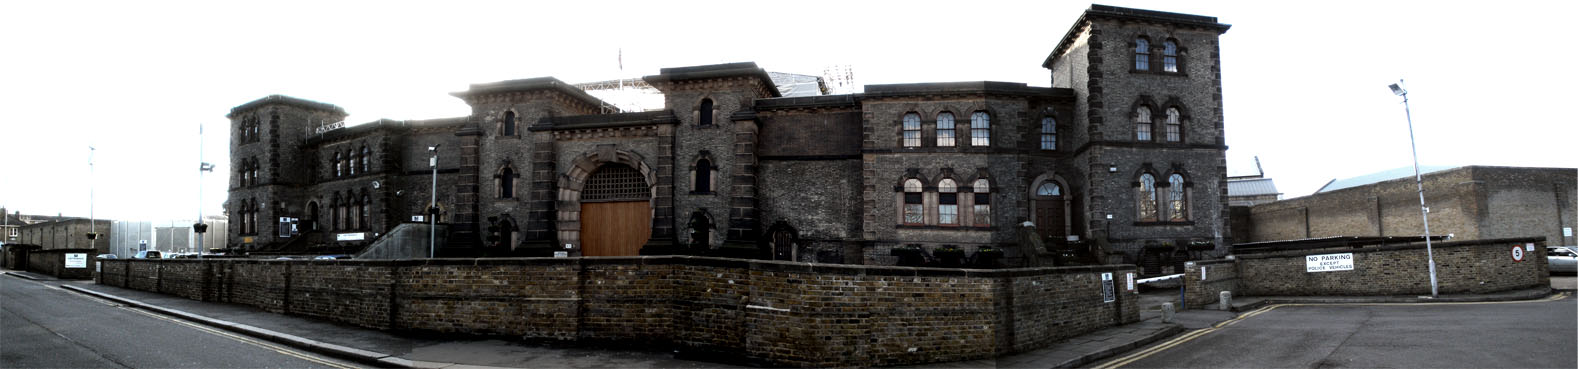 The Famous, Infamous and Notorious Wandsworth Prison